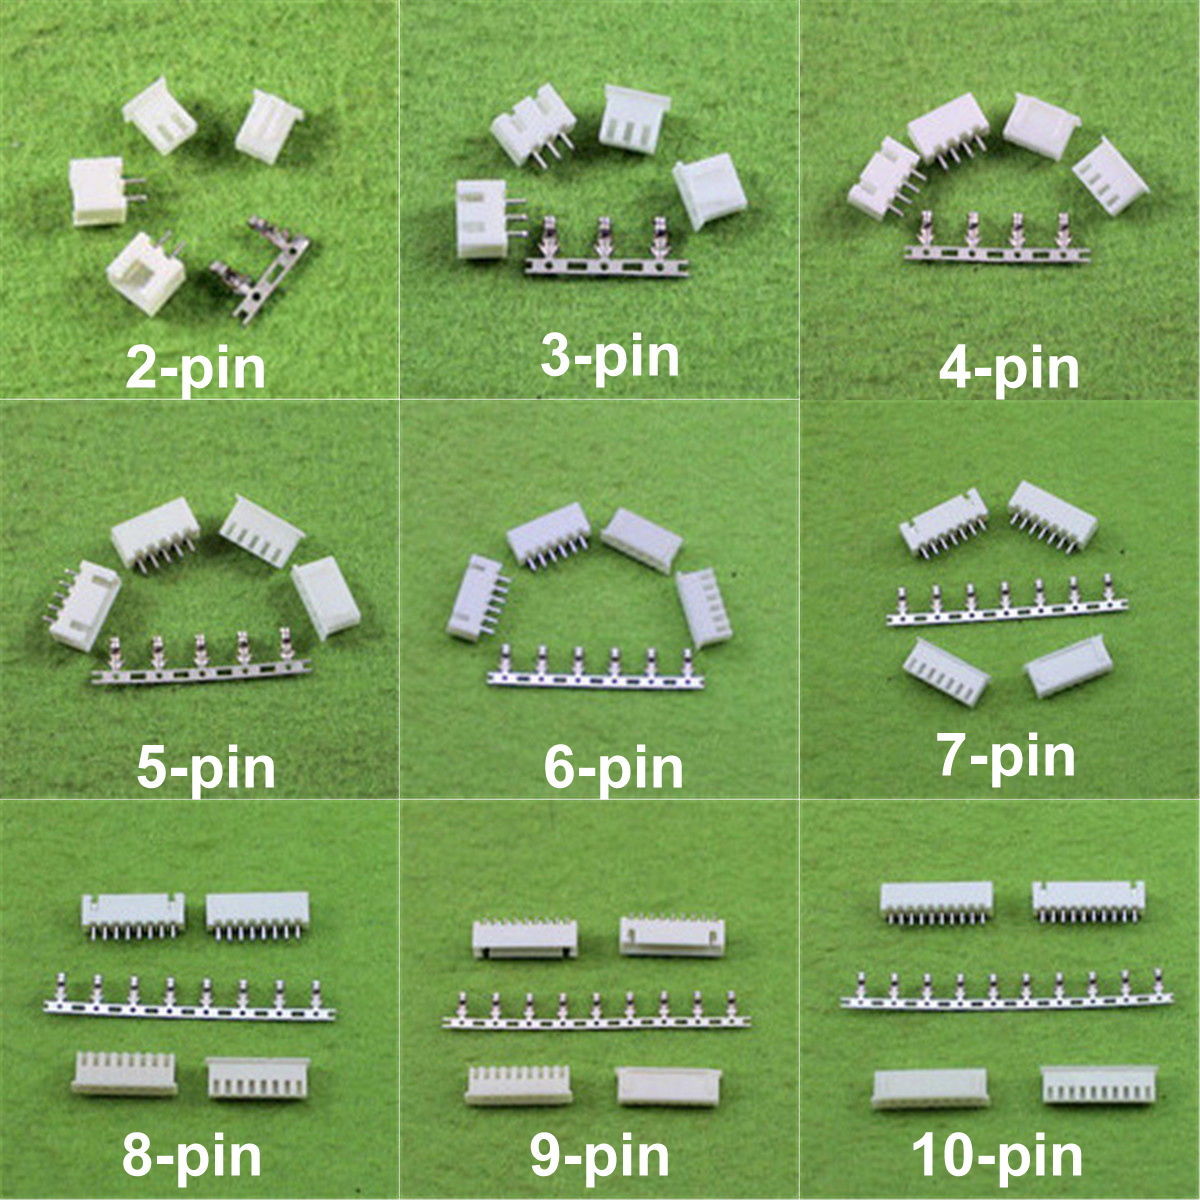 JST XH2.54 2/3/4/5/6/78/9/10-Pin Connector Plug (Male,Female,Crimps) x 50sets jst xh2 54 2 3 4 5 6 78 9 10 pin connector plug male female crimps x 50sets